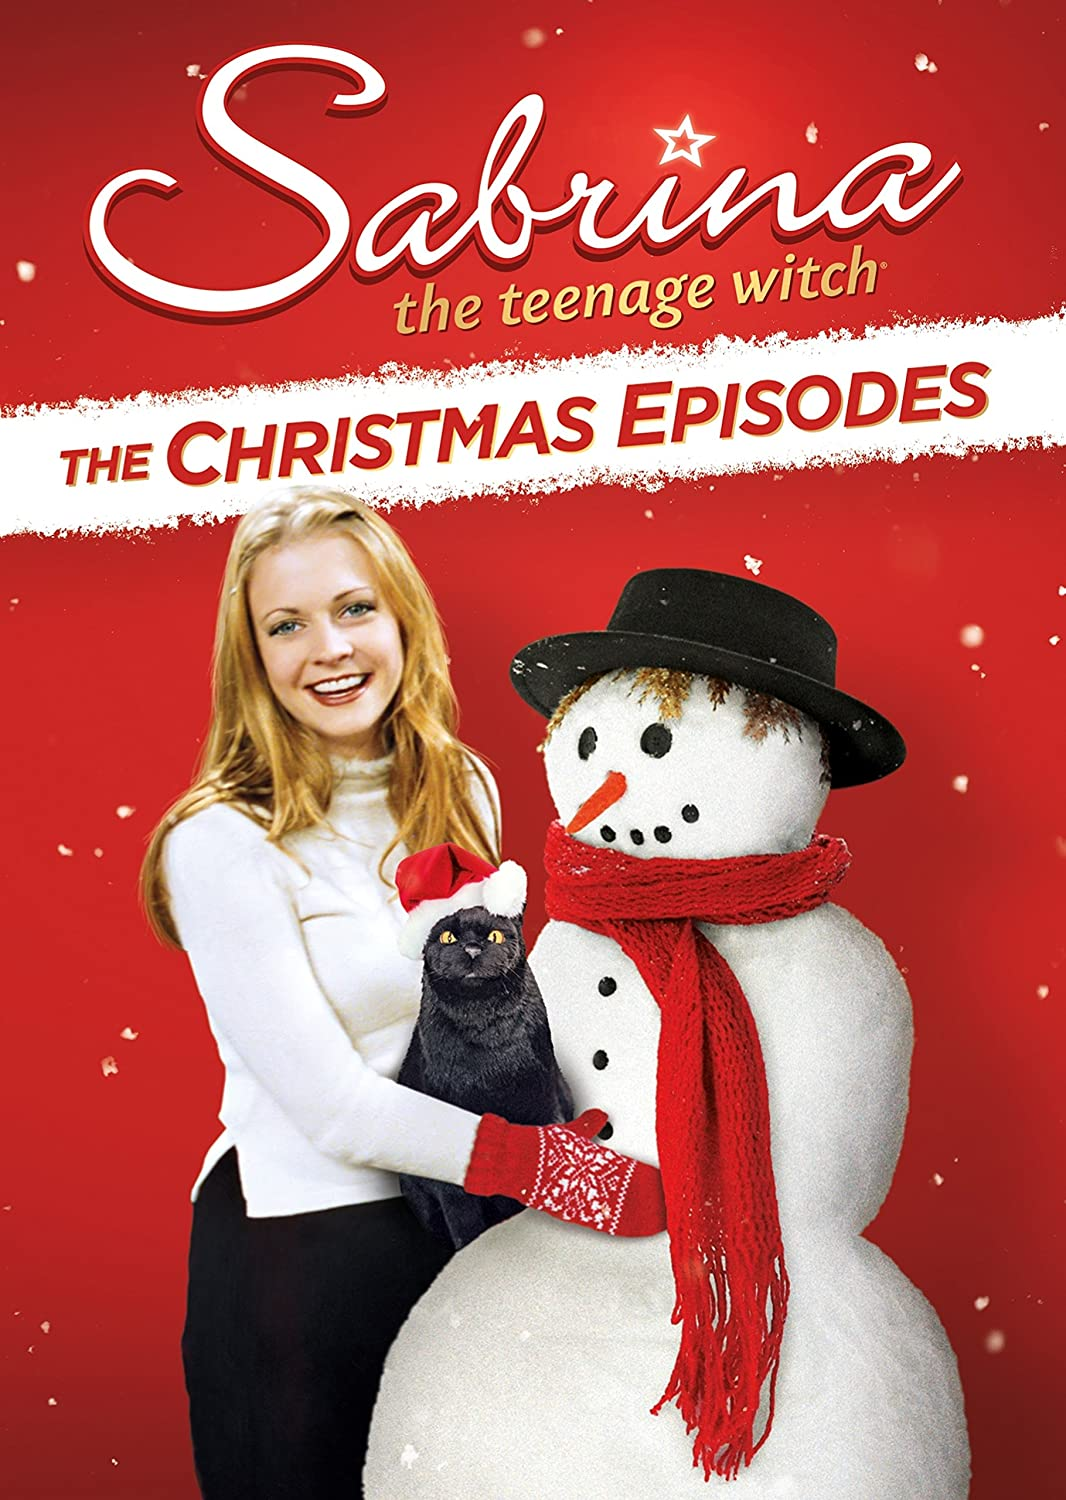 Amazon.com: Sabrina, the Teenage Witch: Christmas Episodes: Beth ...